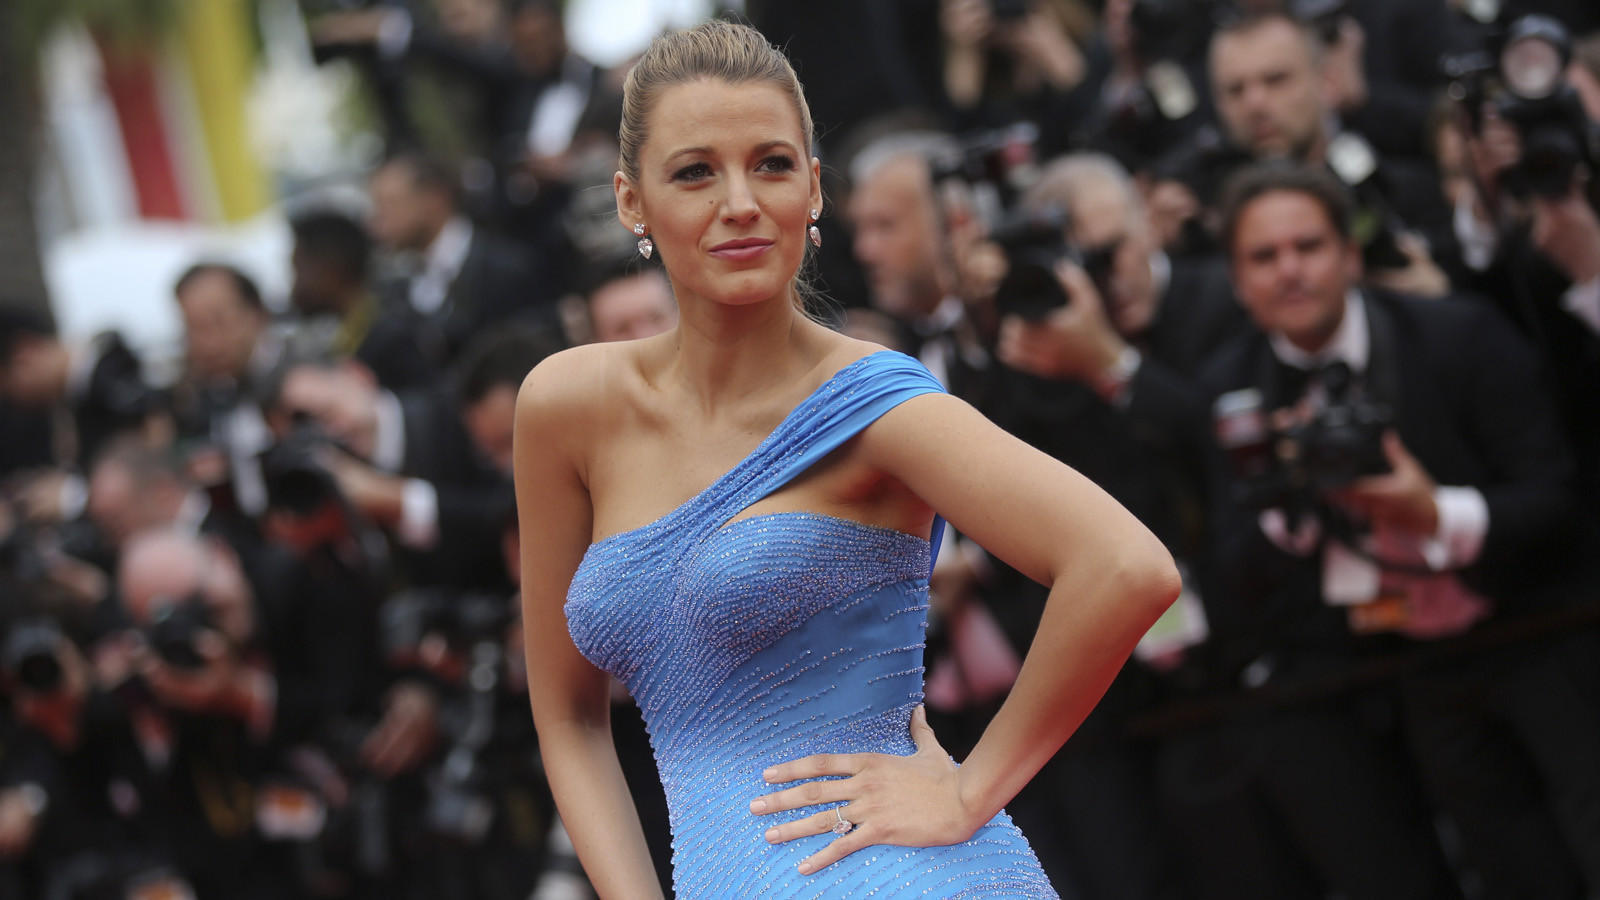 Blake Lively quotes Sir Mix-a-Lot, causing people's heads ...